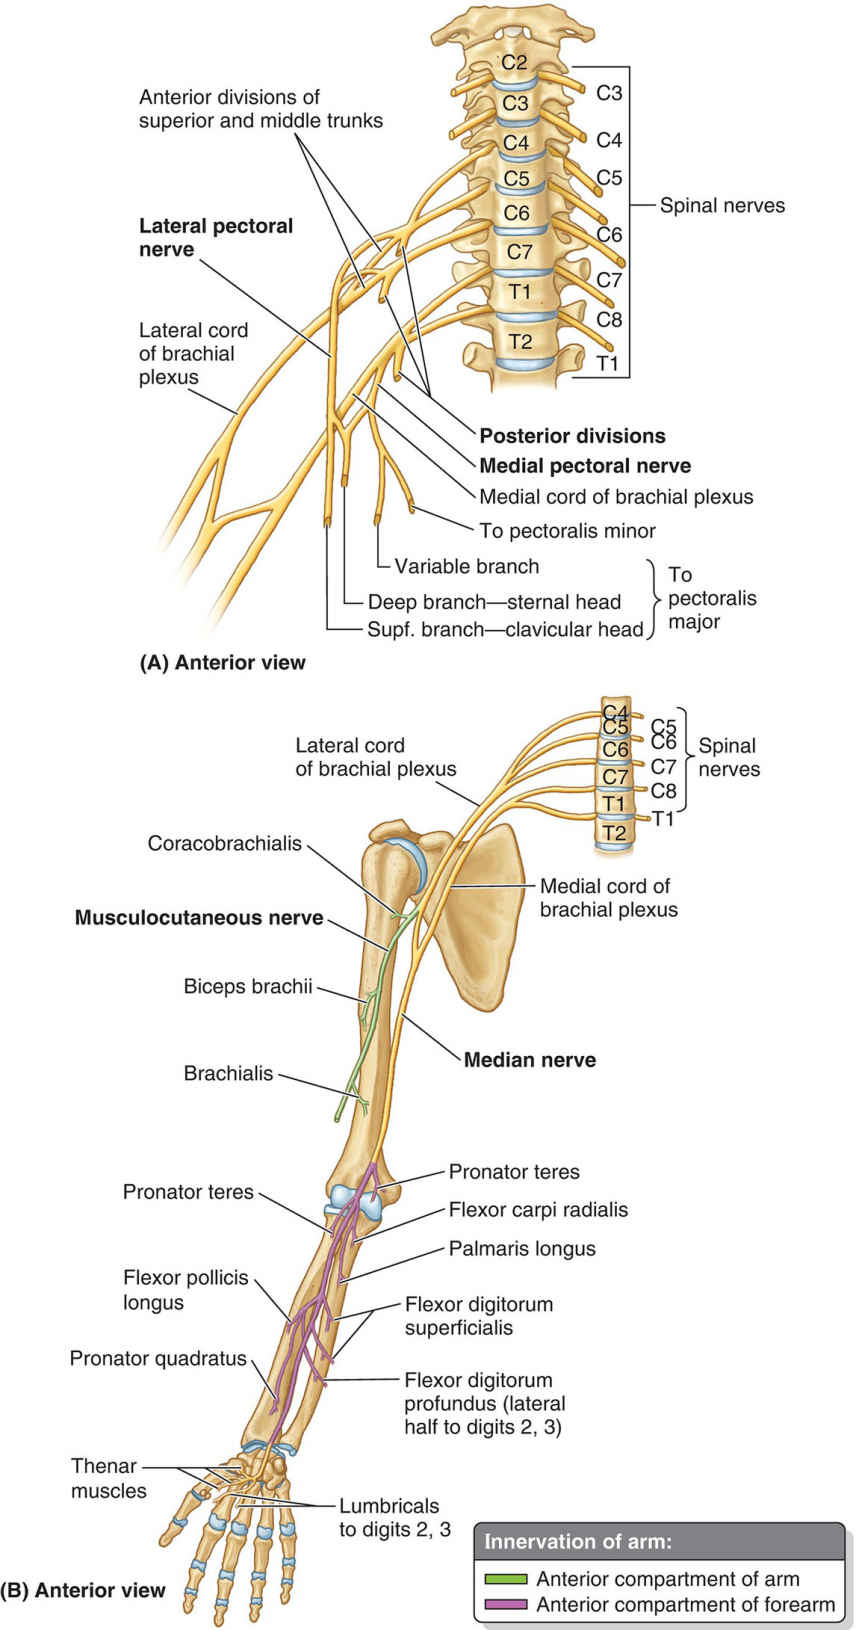 Motor Branches Derived From Cords Of Brachial Plexus Diagram